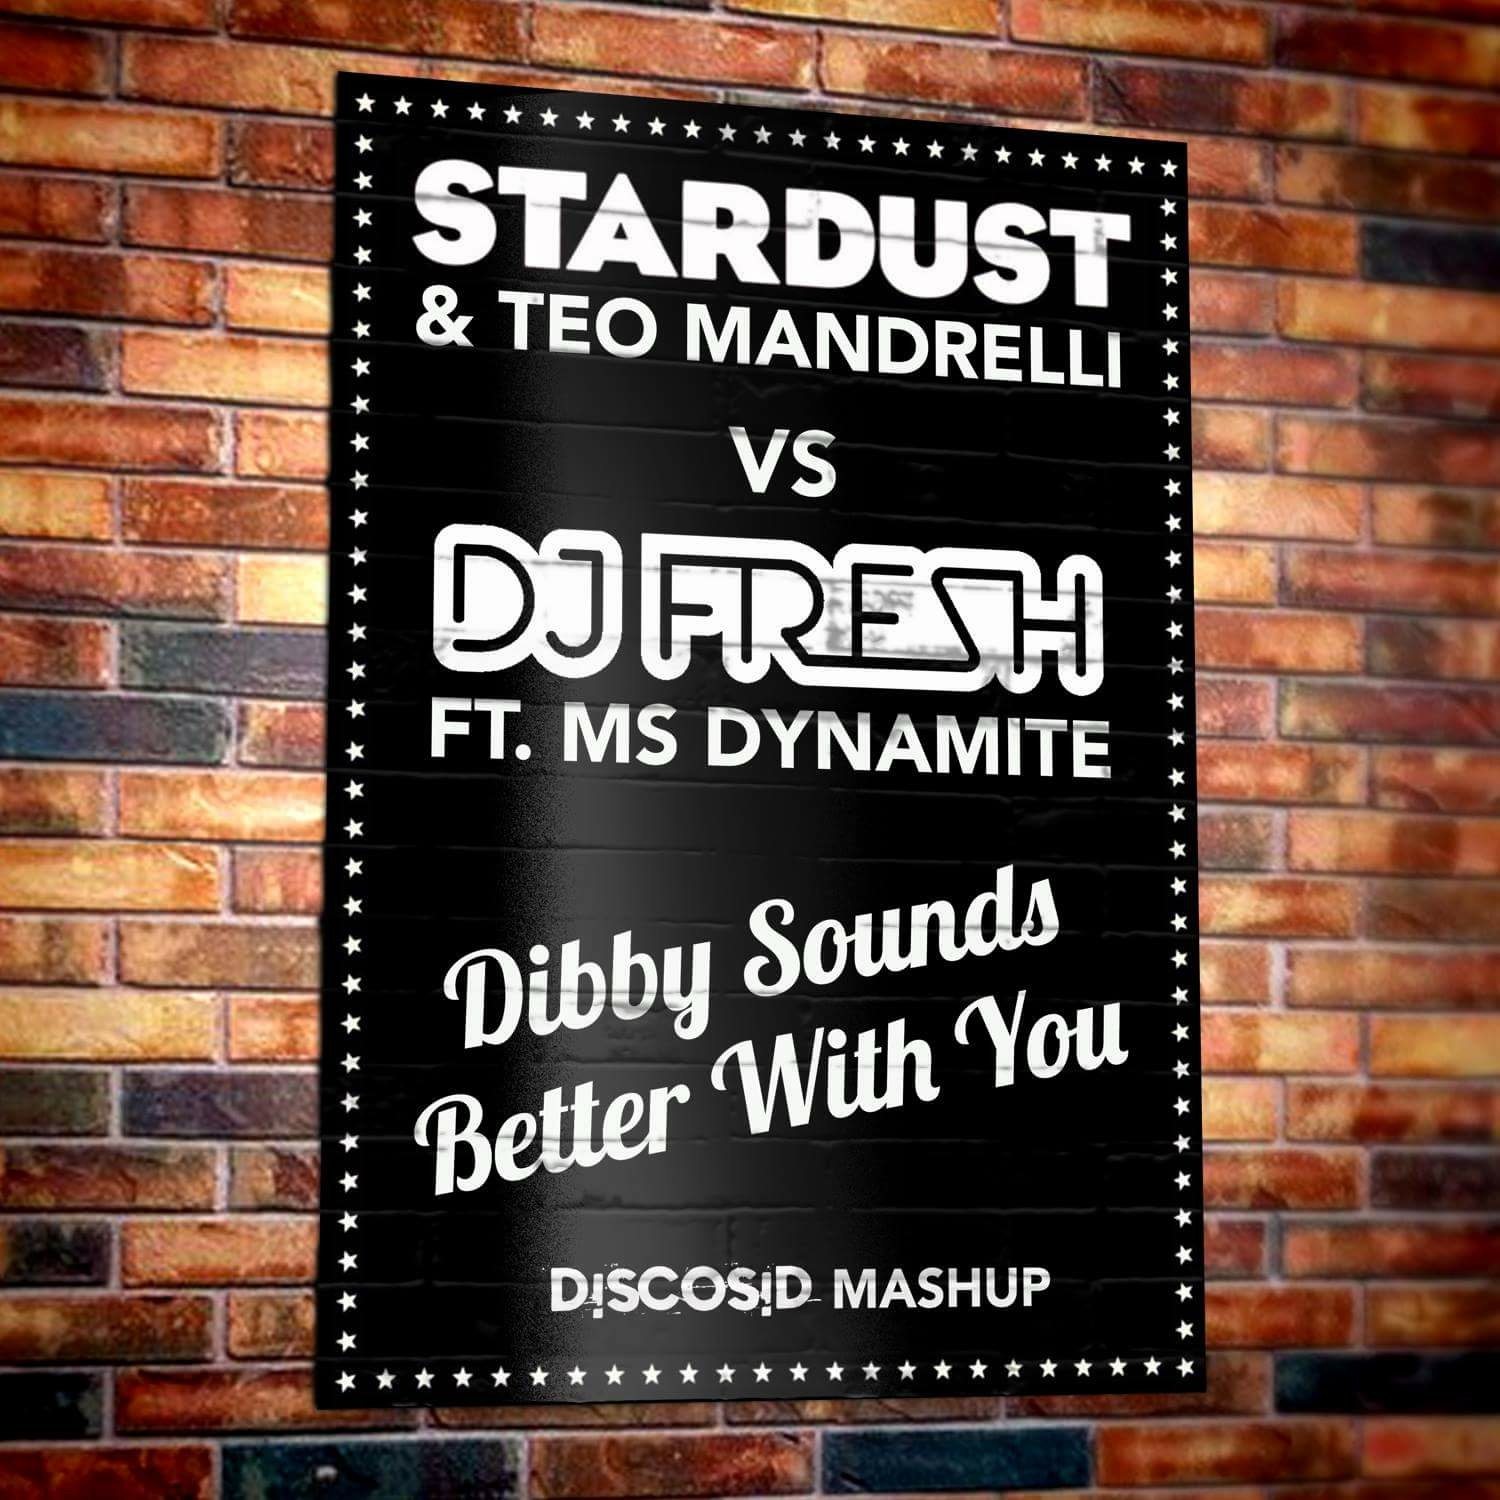 Stardust & Teo Mandrelli Vs Dj Fresh & Ms Dynamite - Dibby Sounds Better With You (Discosid Mashup)